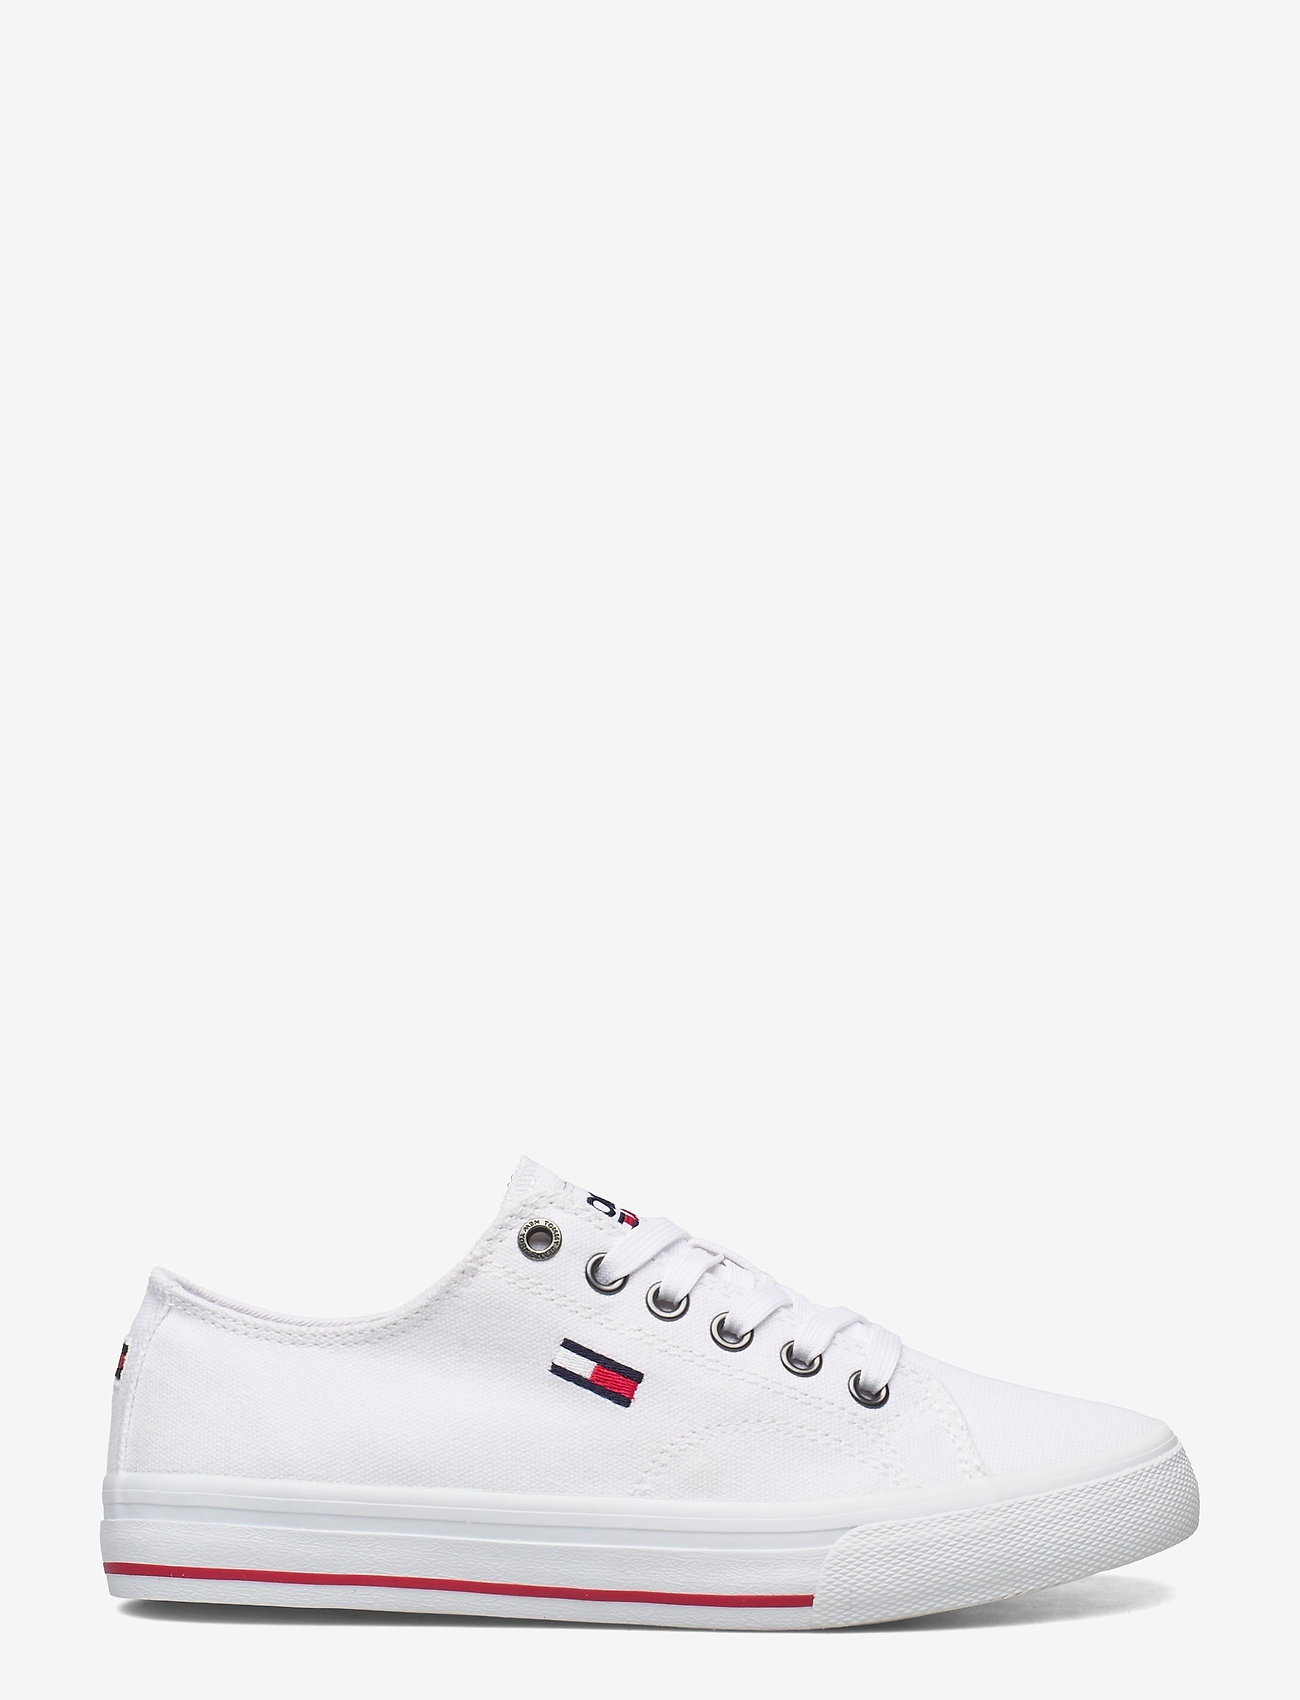 Tommy Hilfiger - TOMMY JEANS LOW CUT VULC - low top sneakers - white - 1